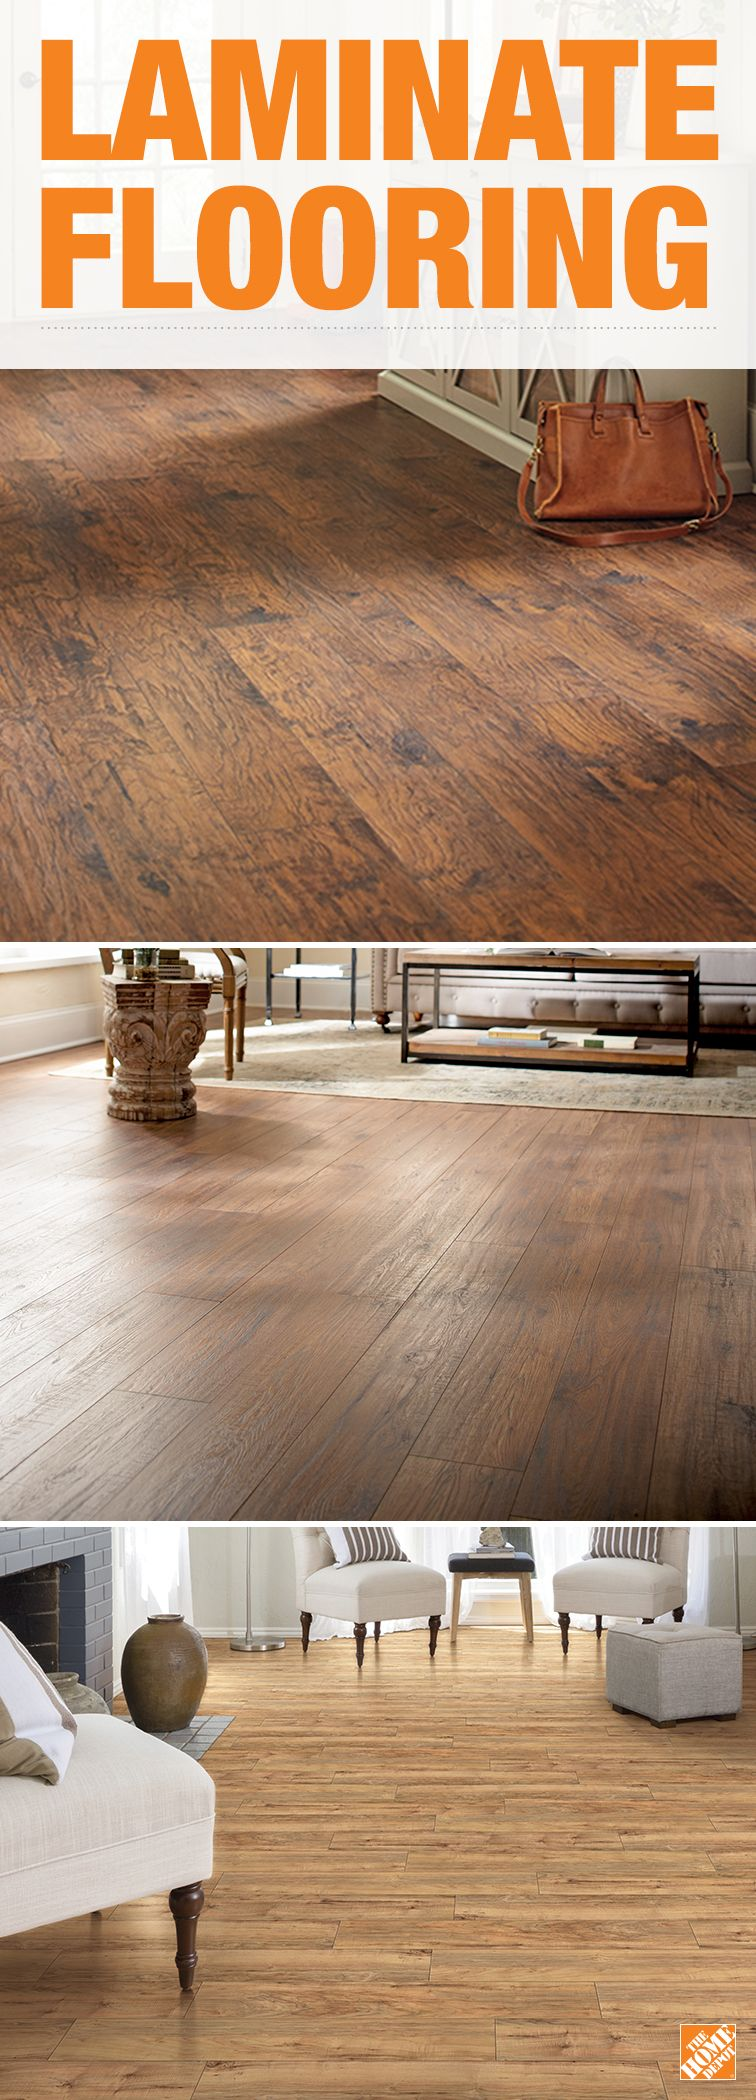 How durable is laminate flooring - Find Durable Laminate Flooring Floor Tile At The Home Depot